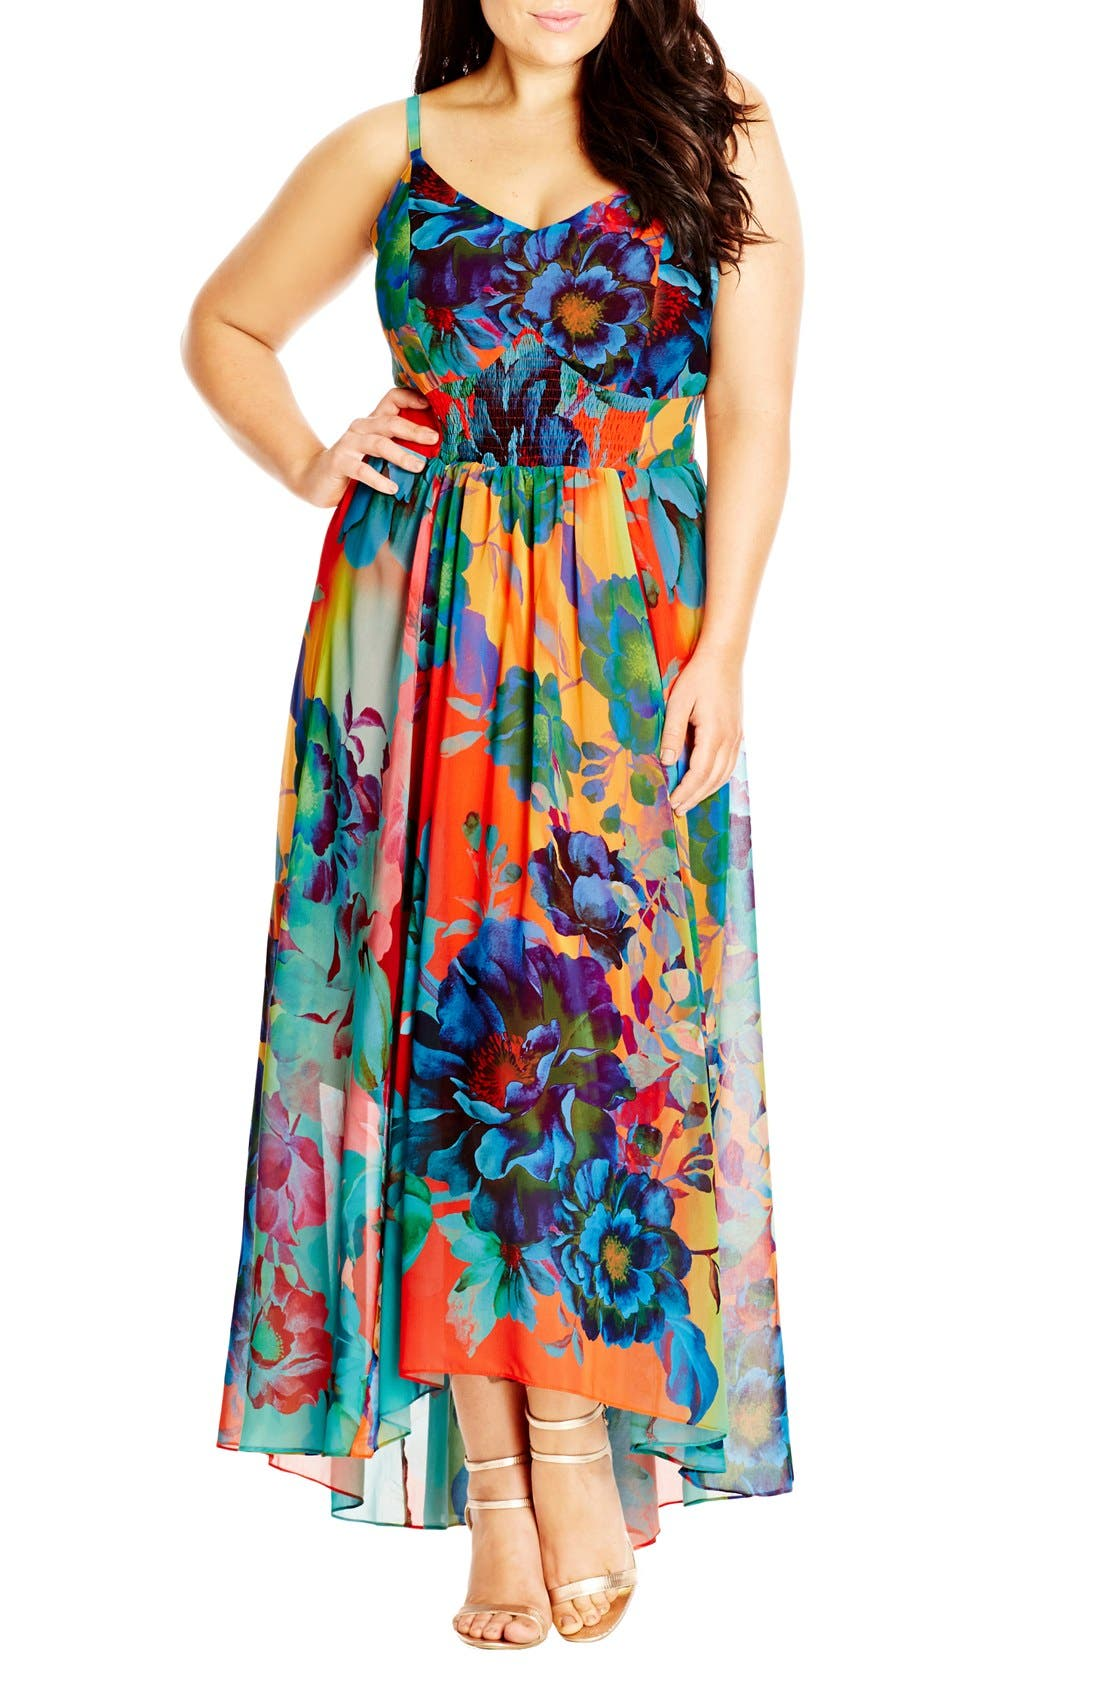 CITY CHIC 'Hot Summer Days' Print High/Low Maxi Dress, Main, color, CORAL